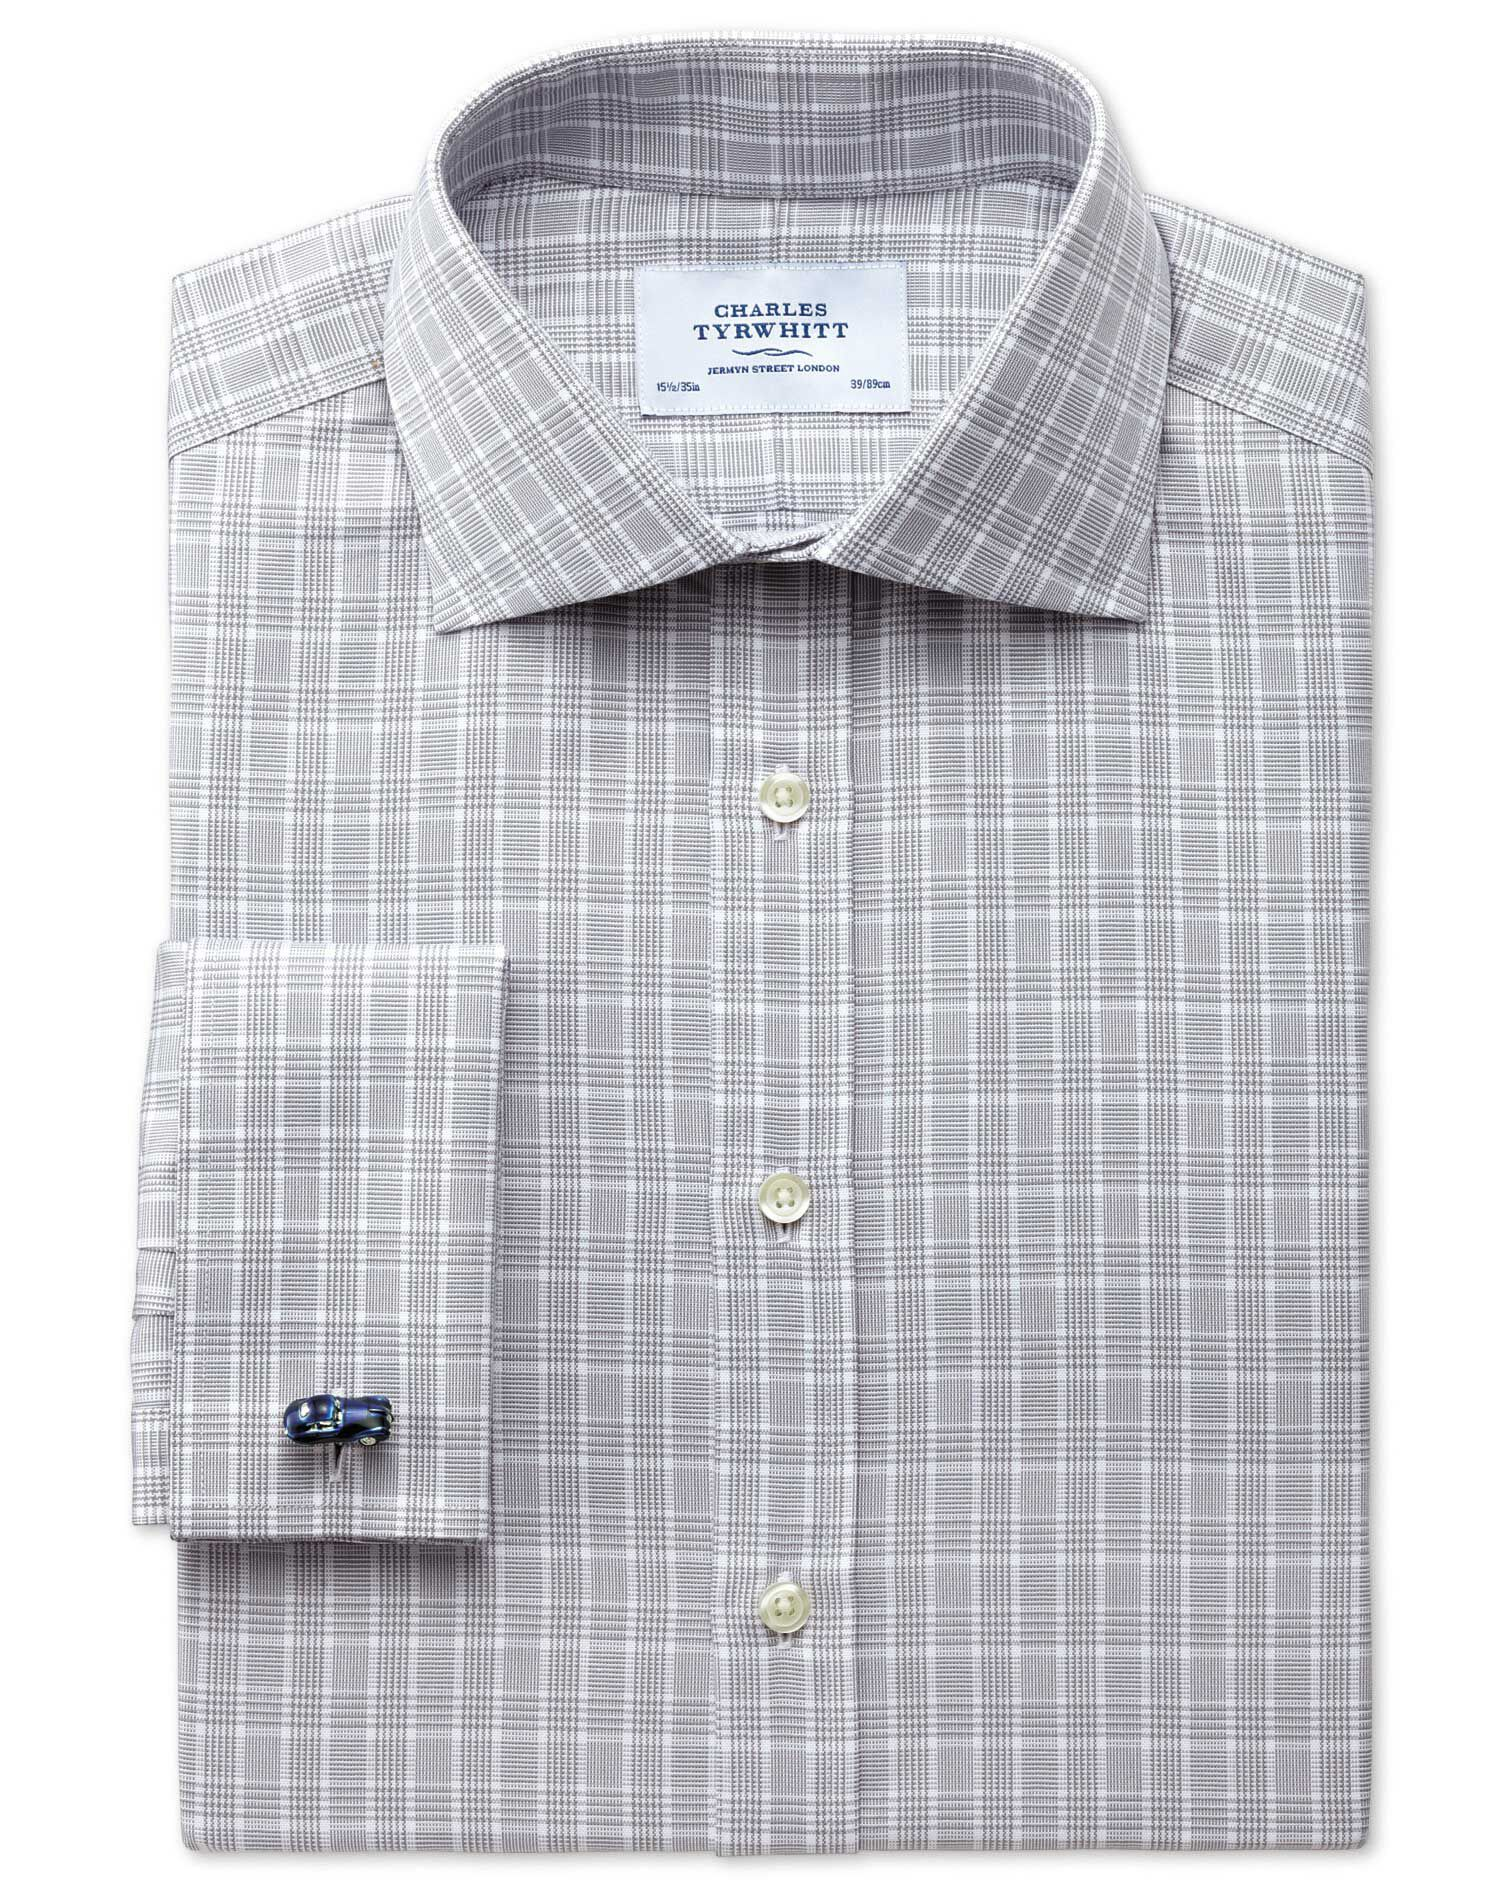 Extra Slim Fit Prince Of Wales Silver Cotton Formal Shirt Single Cuff Size 16/38 by Charles Tyrwhitt